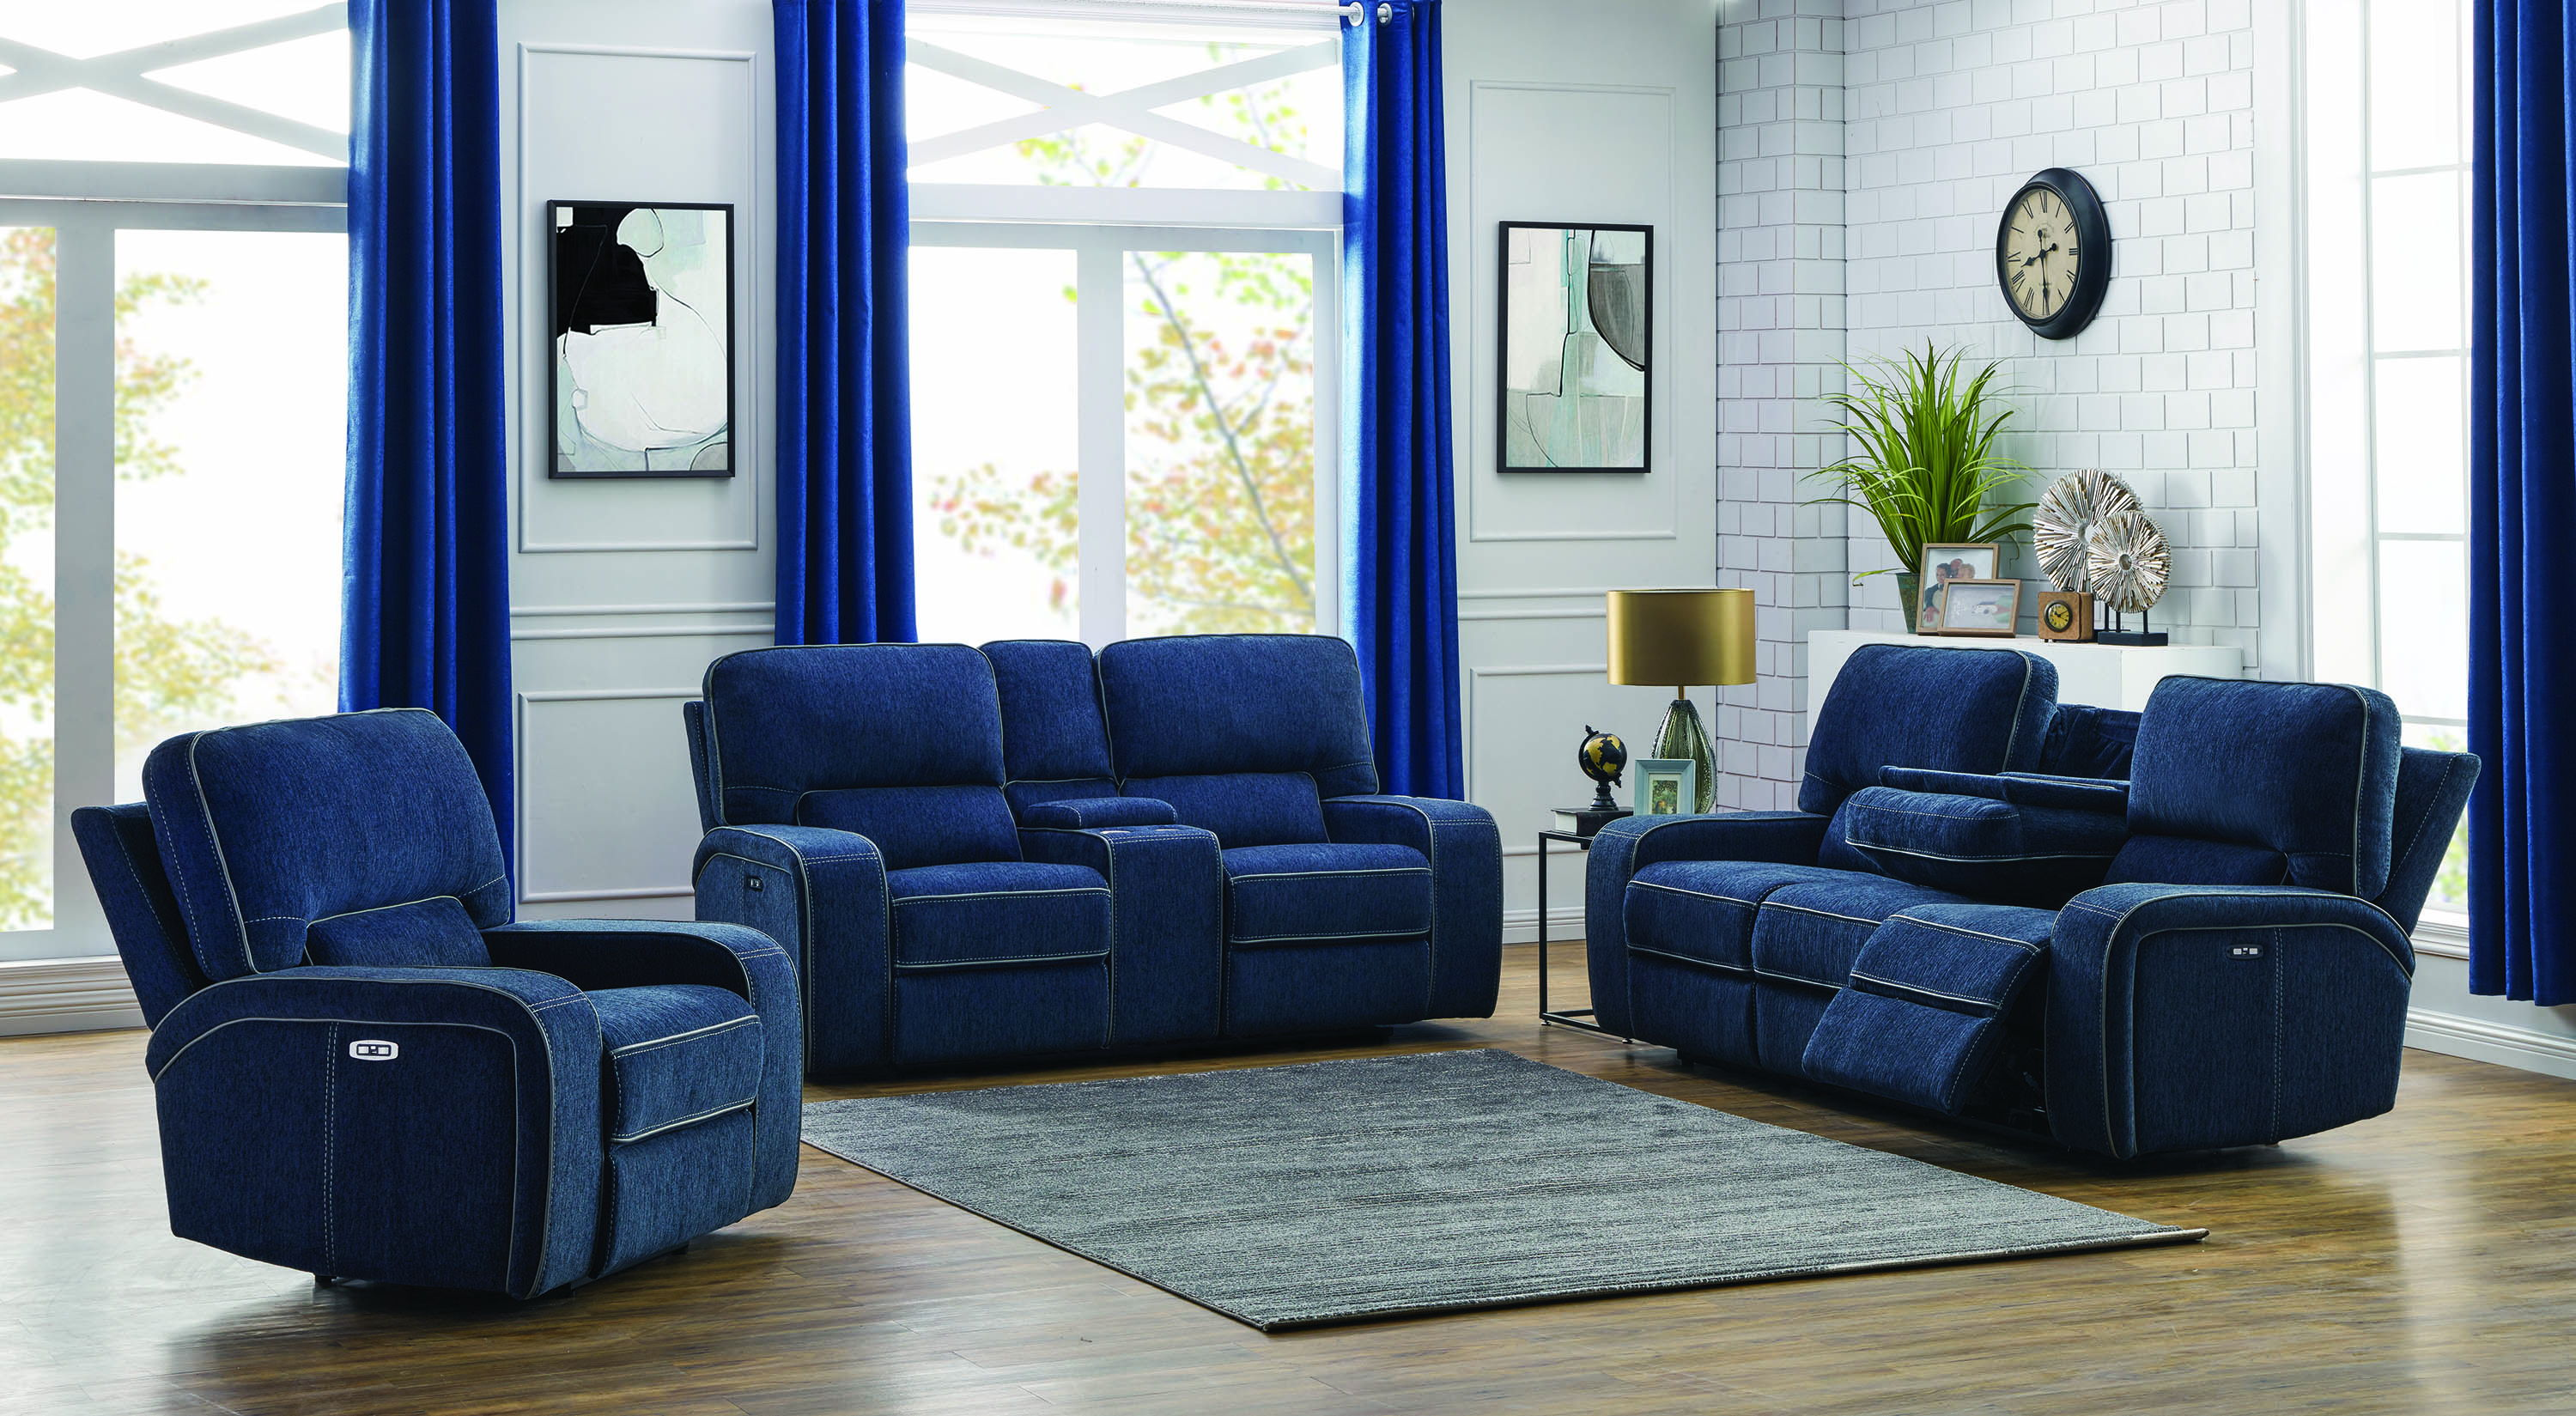 Coaster Furniture Groveland Navy Blue 3pc Power Living Room Set